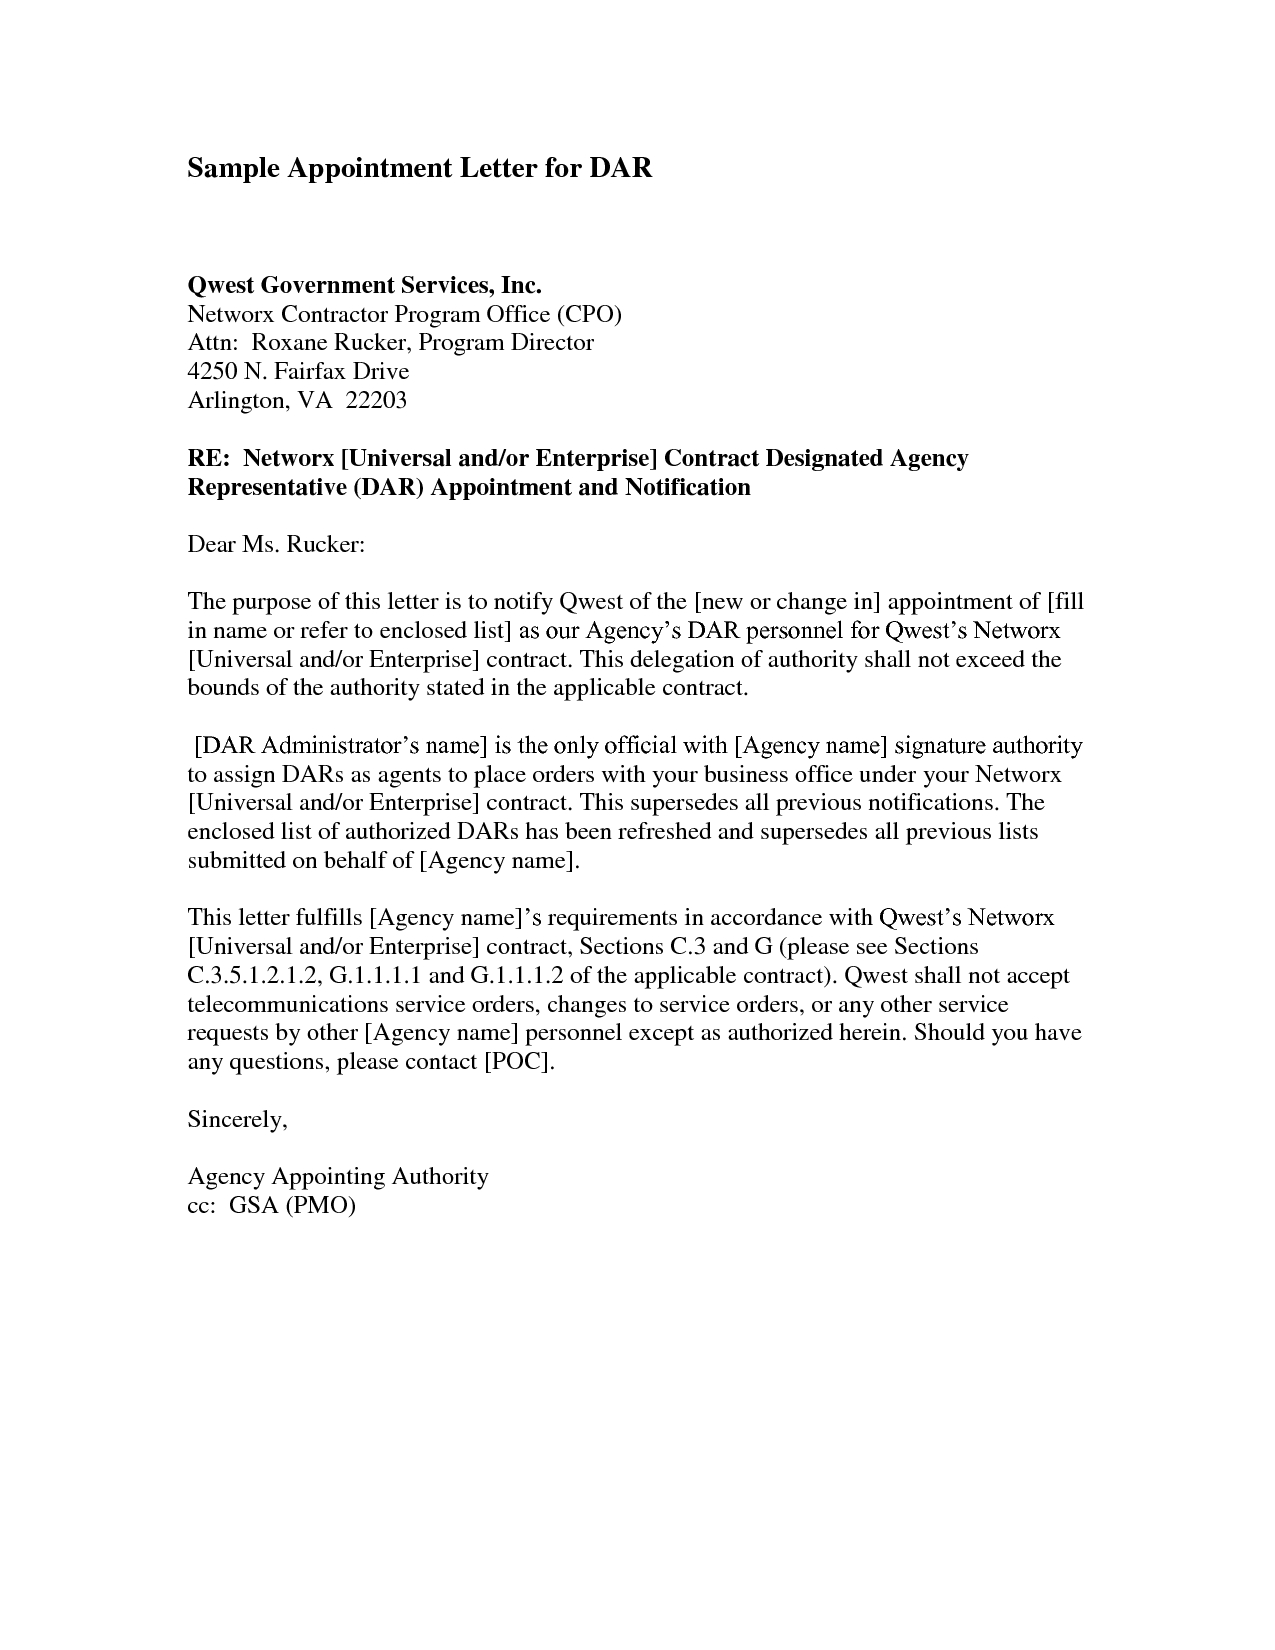 Legal Settlement Offer Letter Template - Trustee Appointment Letter Director Trustee is Appointed or